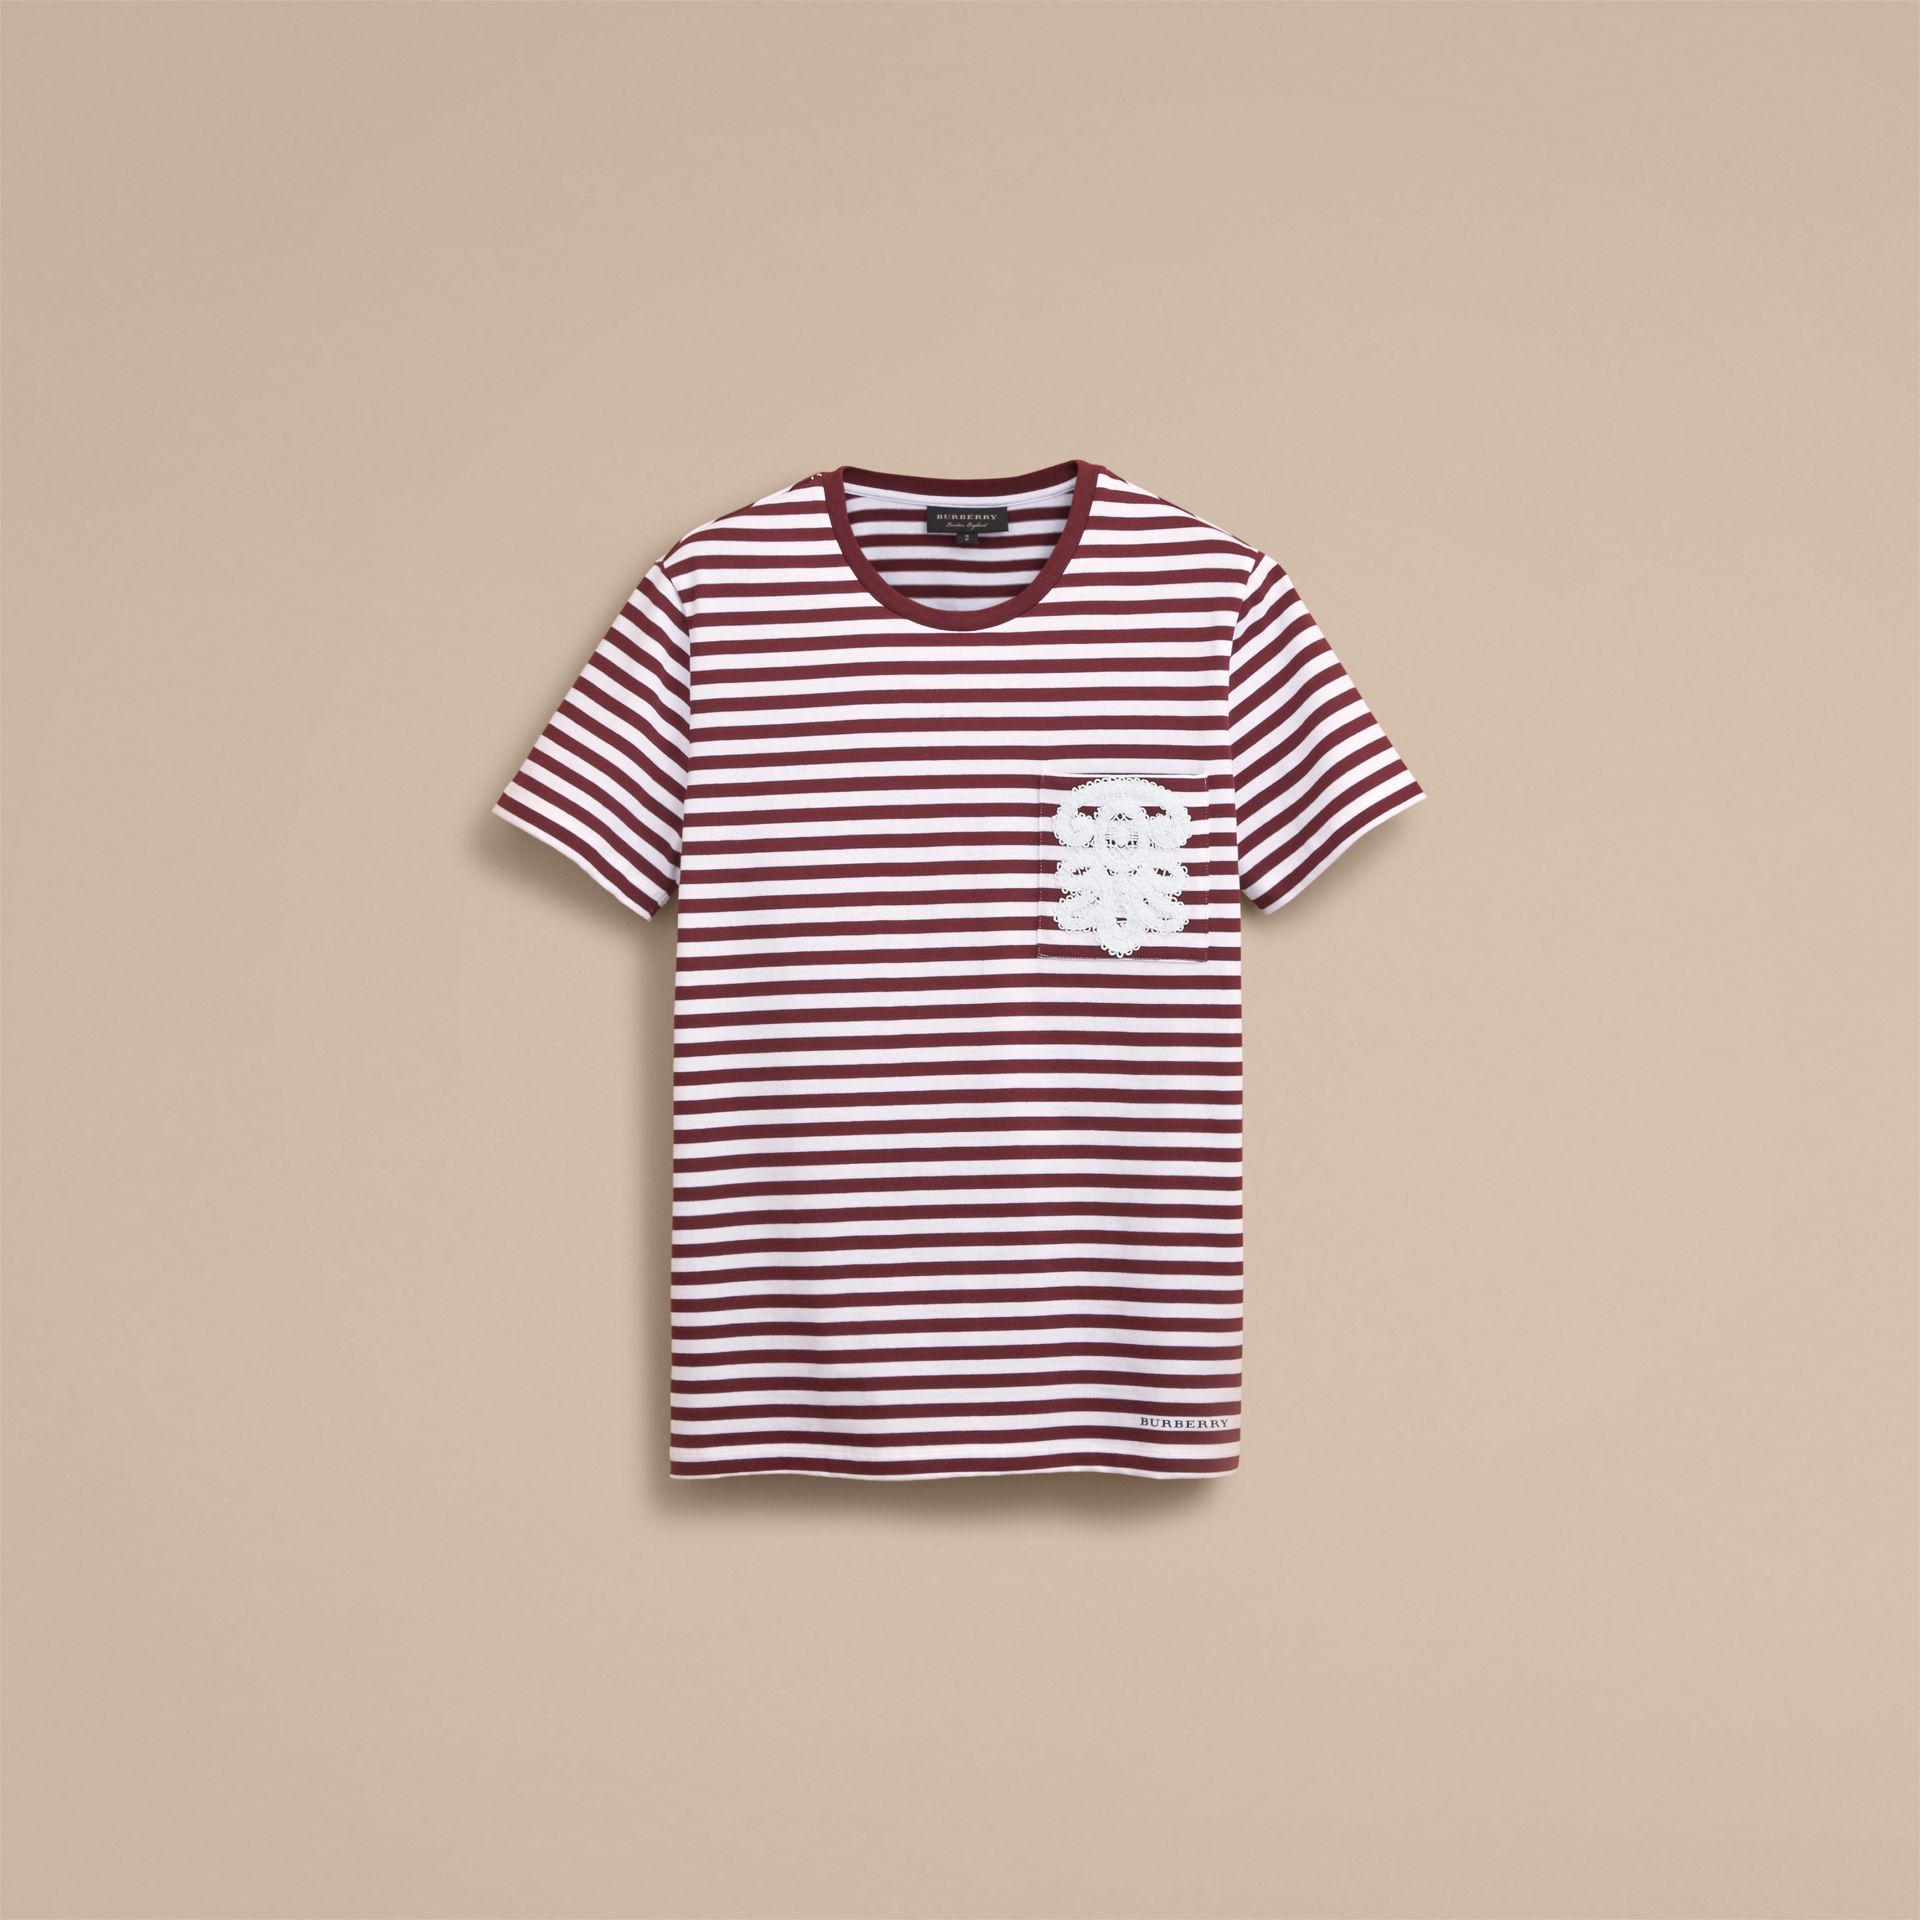 Lace Appliqué Detail Breton Stripe Cotton T-shirt in Burgundy/white - Men | Burberry - gallery image 4